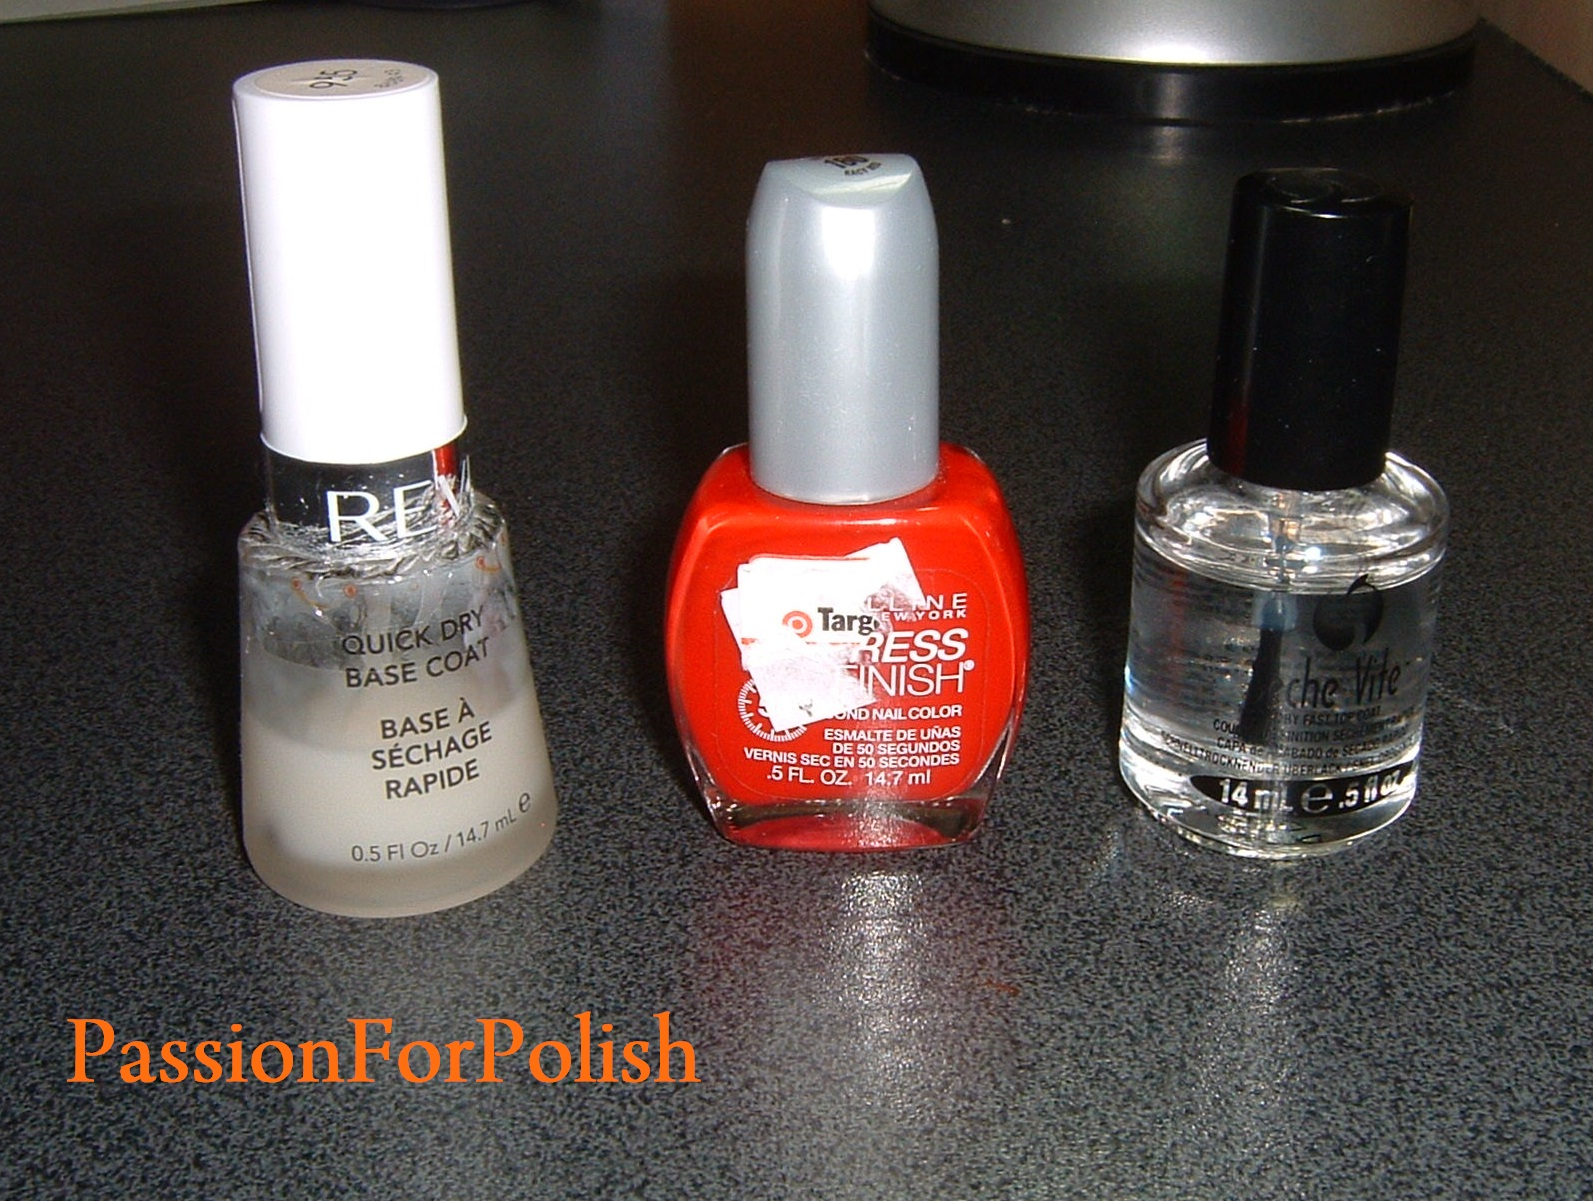 PassionForPolish: How To: Painting Your Nails